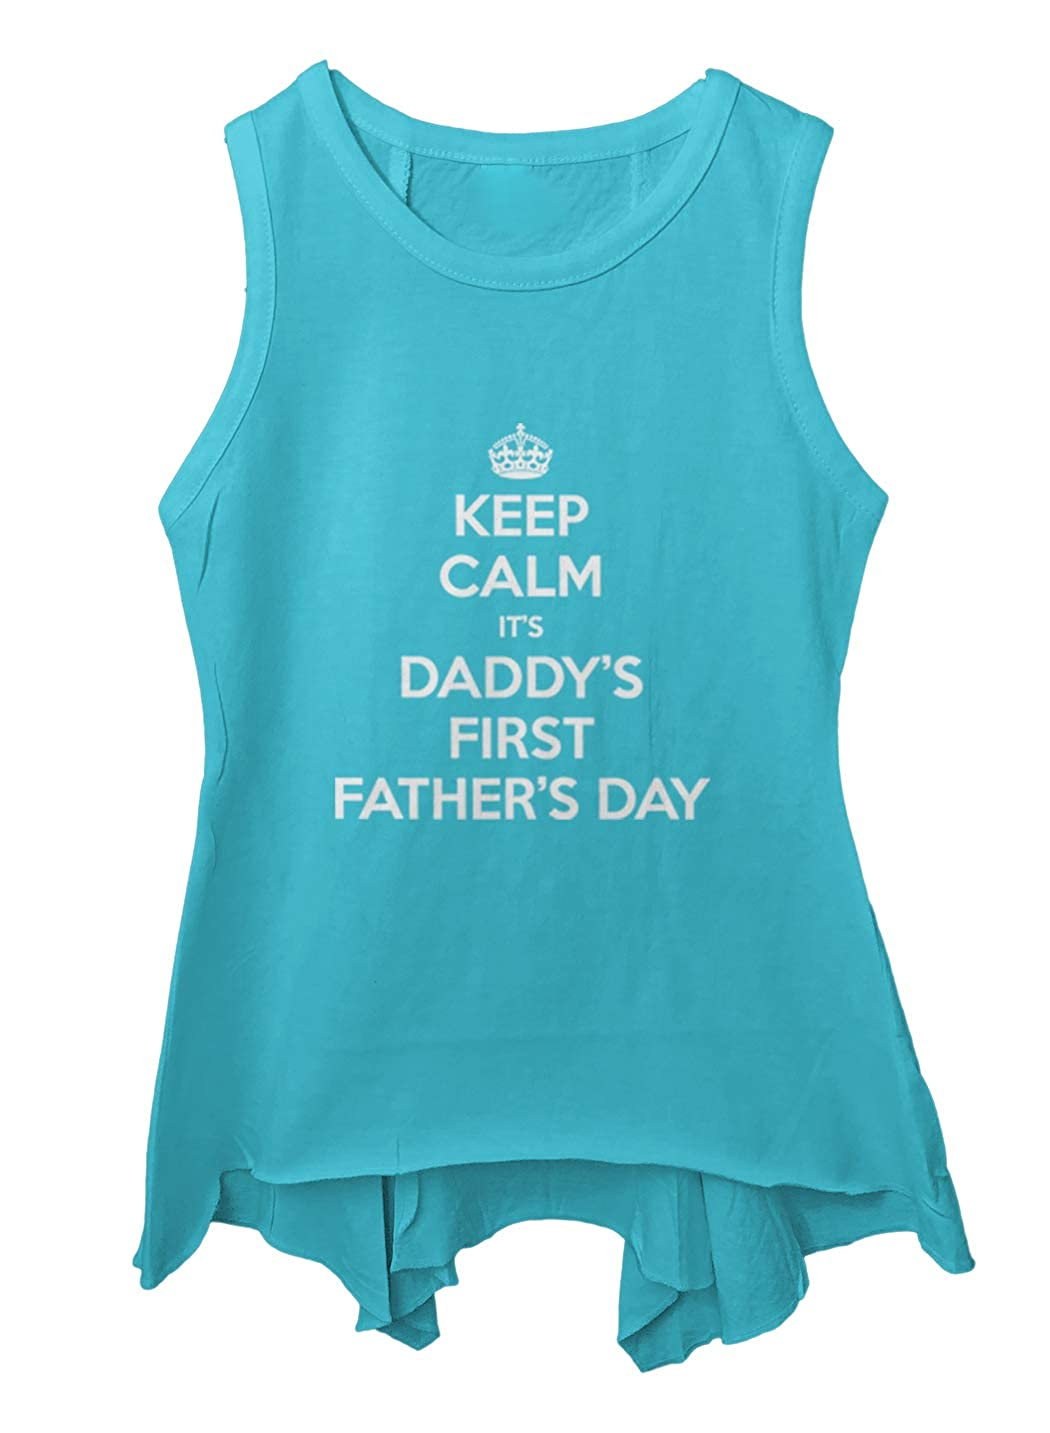 Tcombo Keep Calm Daddys First Fathers Day Toddler//Youth Sleeveless Backswing